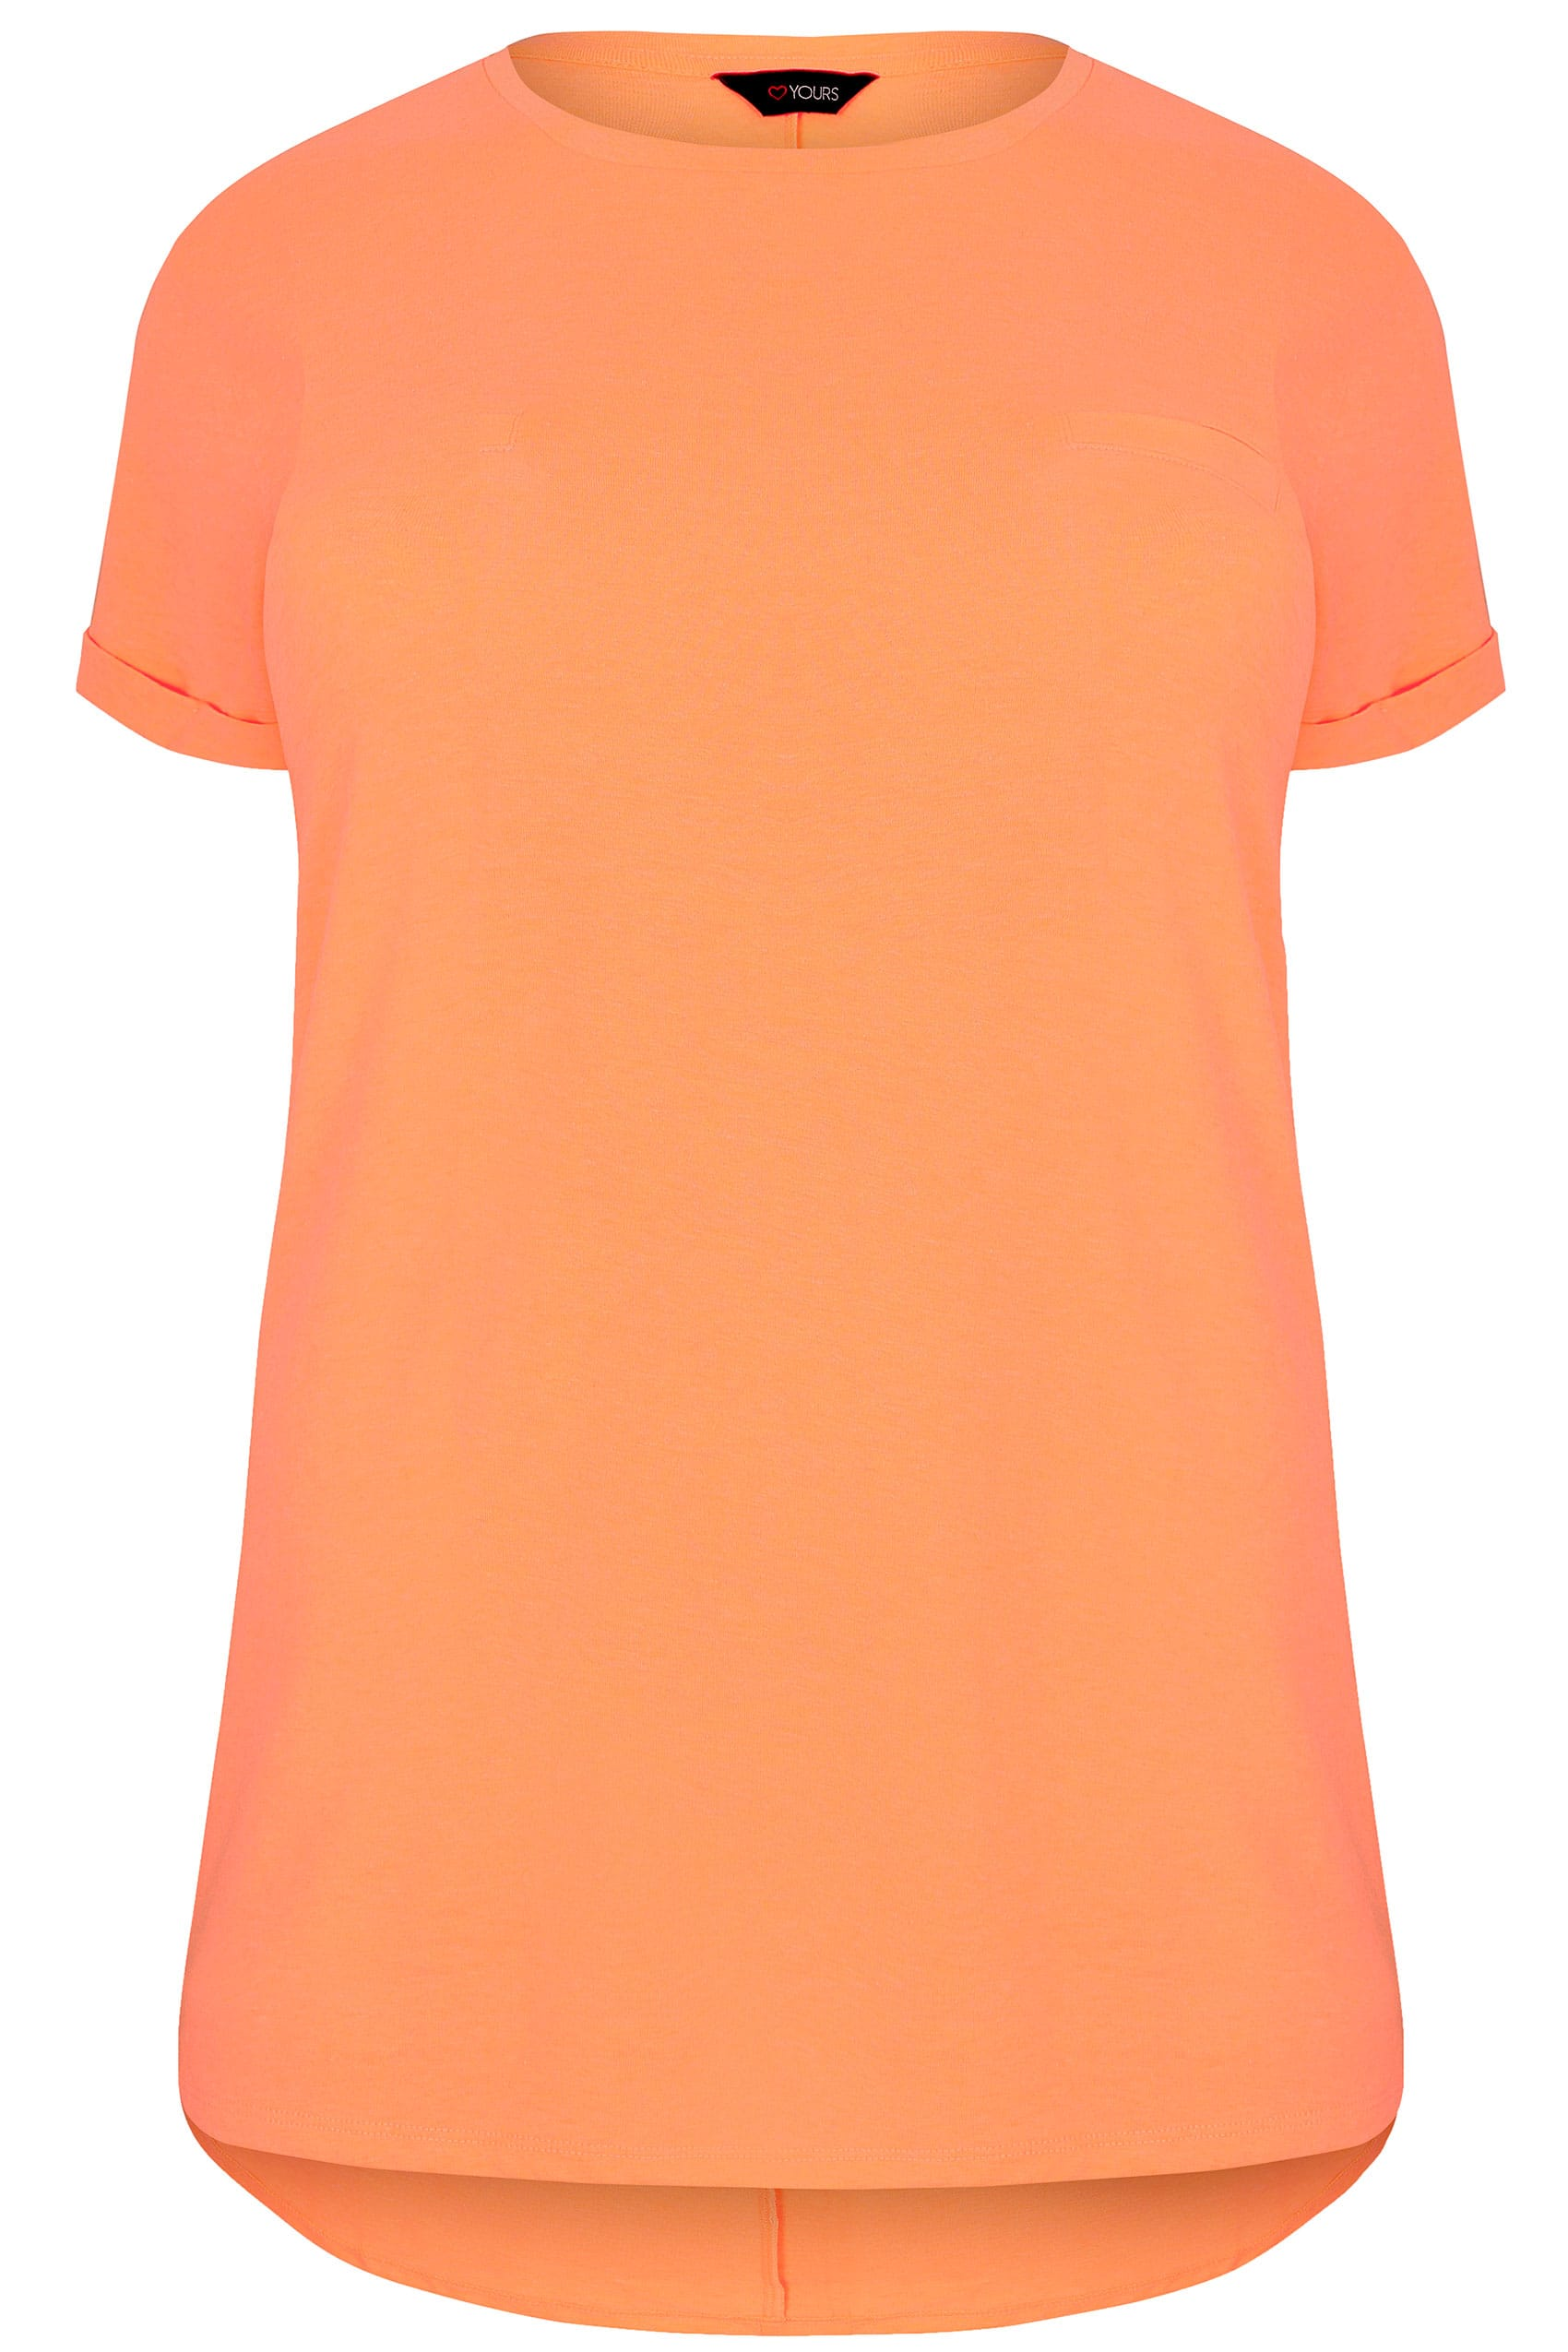 Neon orange pocket t shirt with curved hem plus size 16 to 36 for Buy here pay later